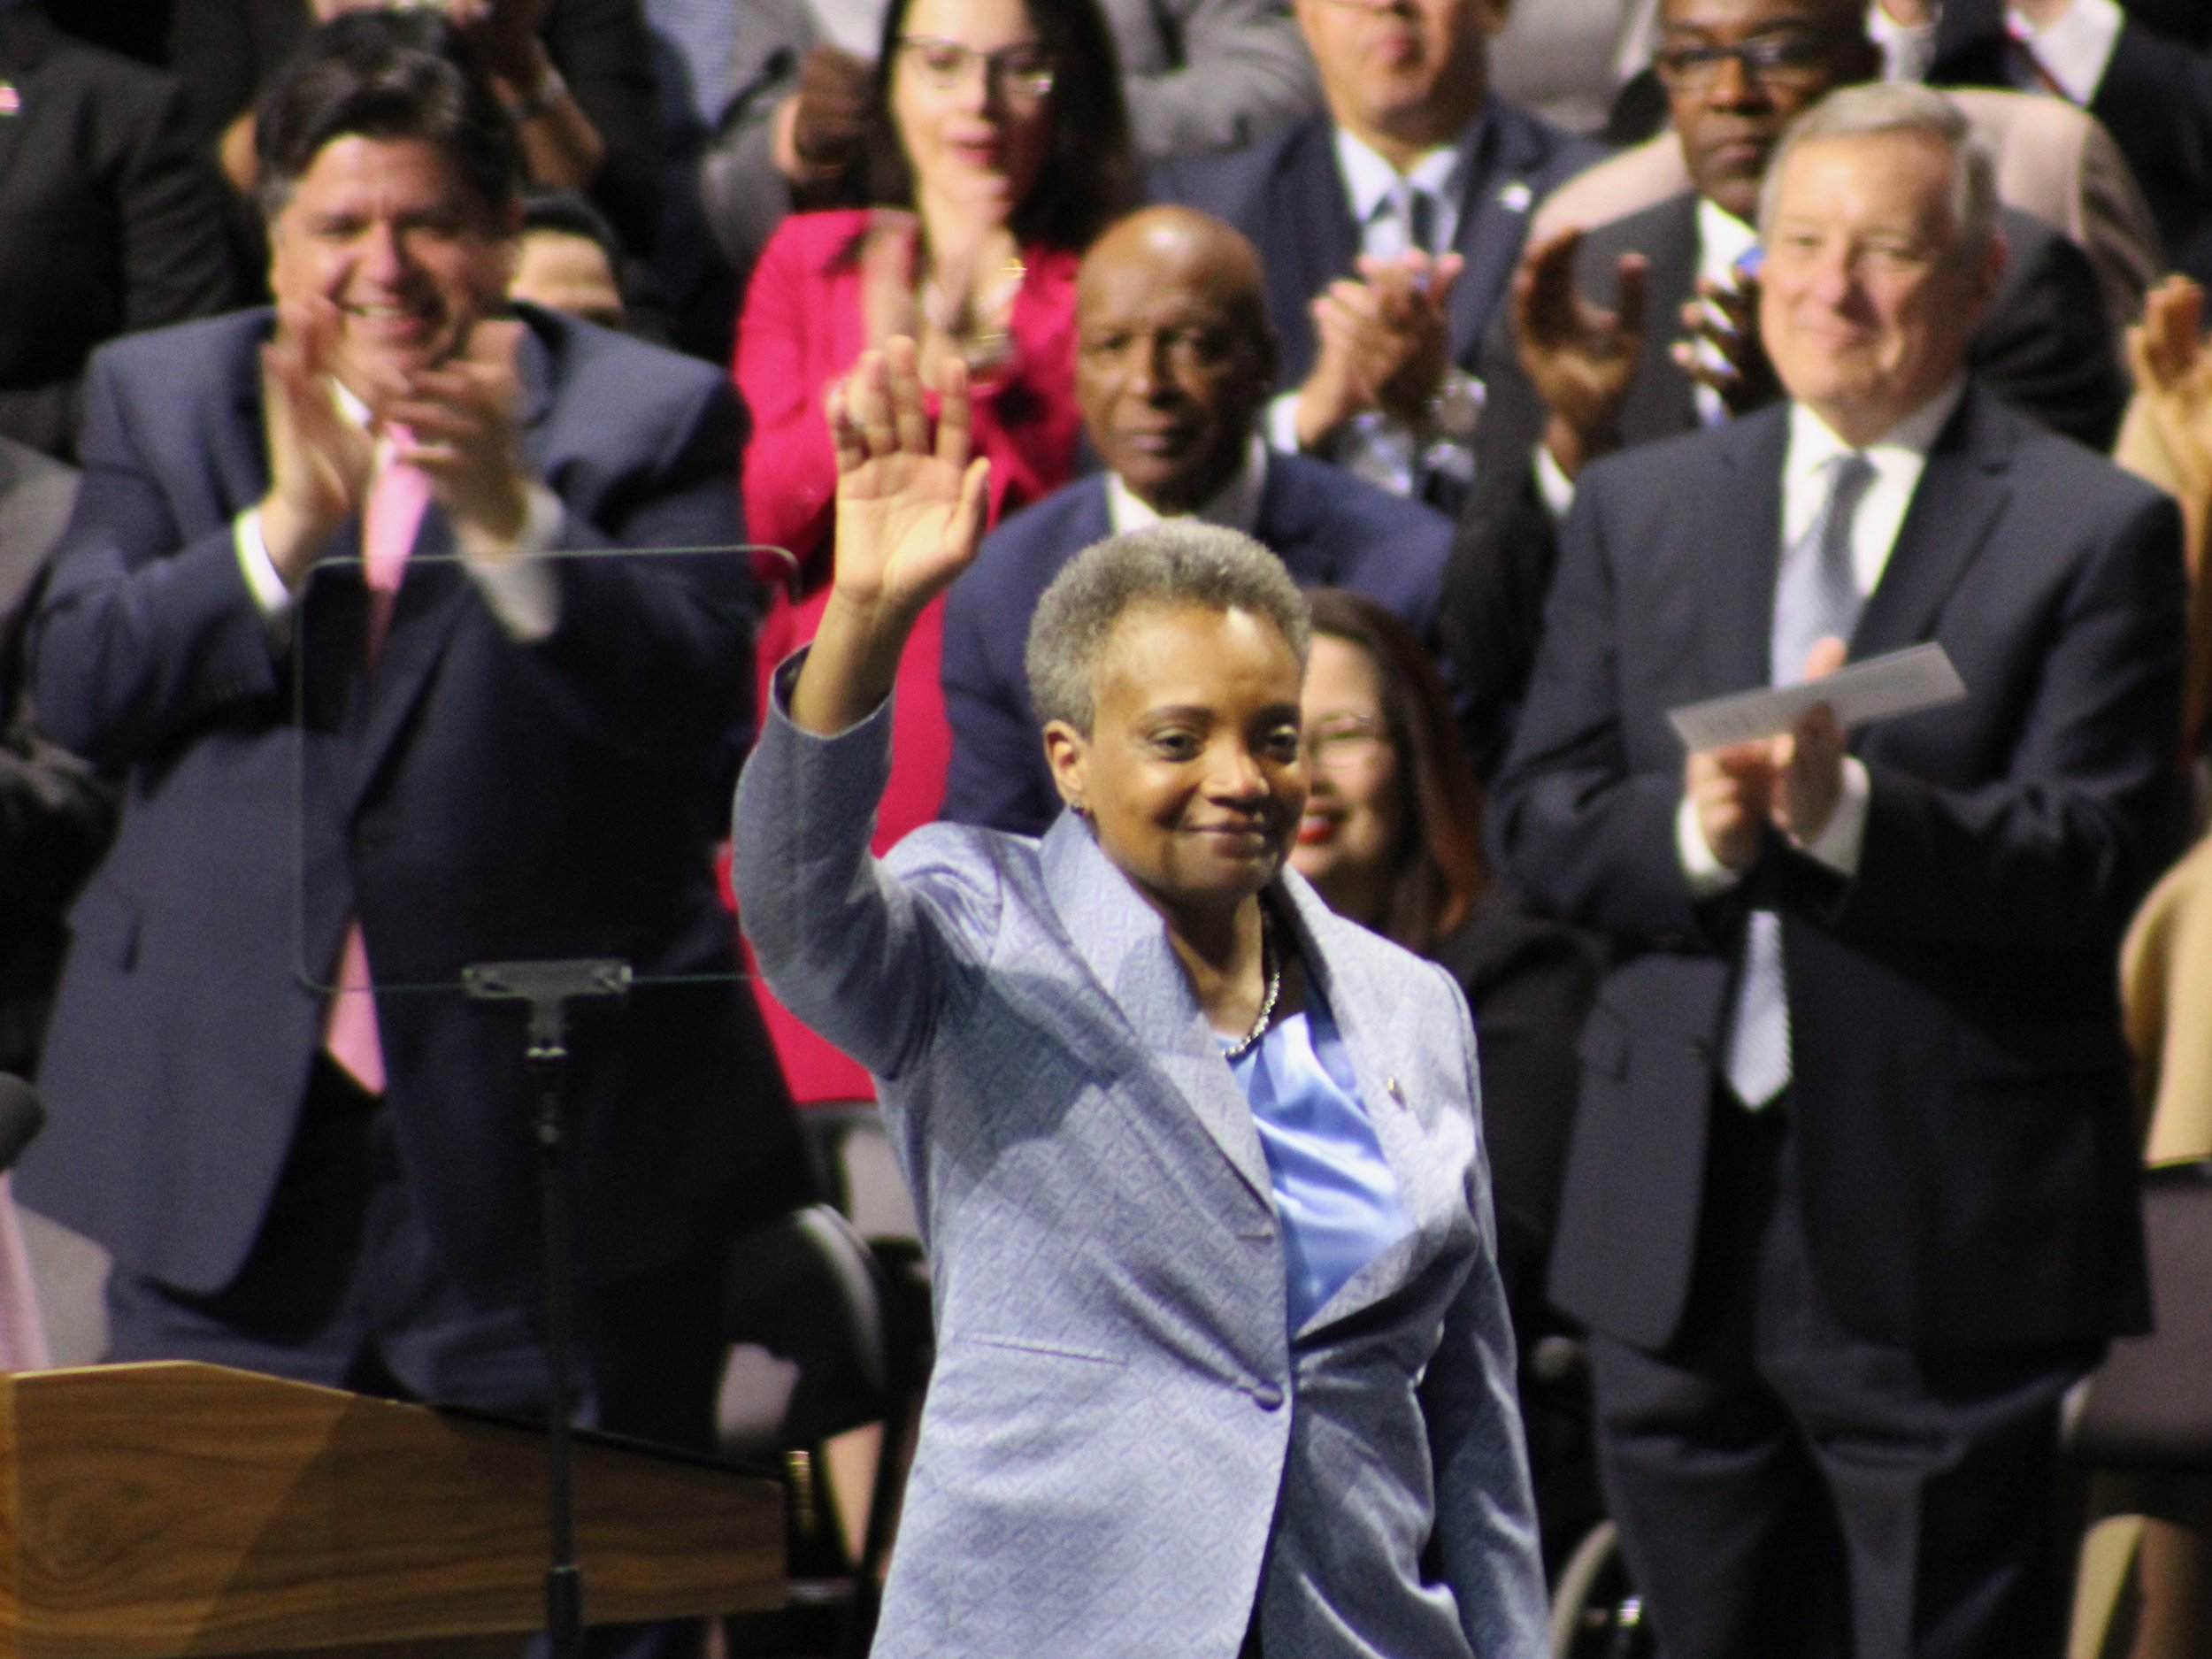 Chicago Mayor Lori Lightfoot acknowledges the crowd at her inauguration Monday. (One Illinois/Ted Cox)